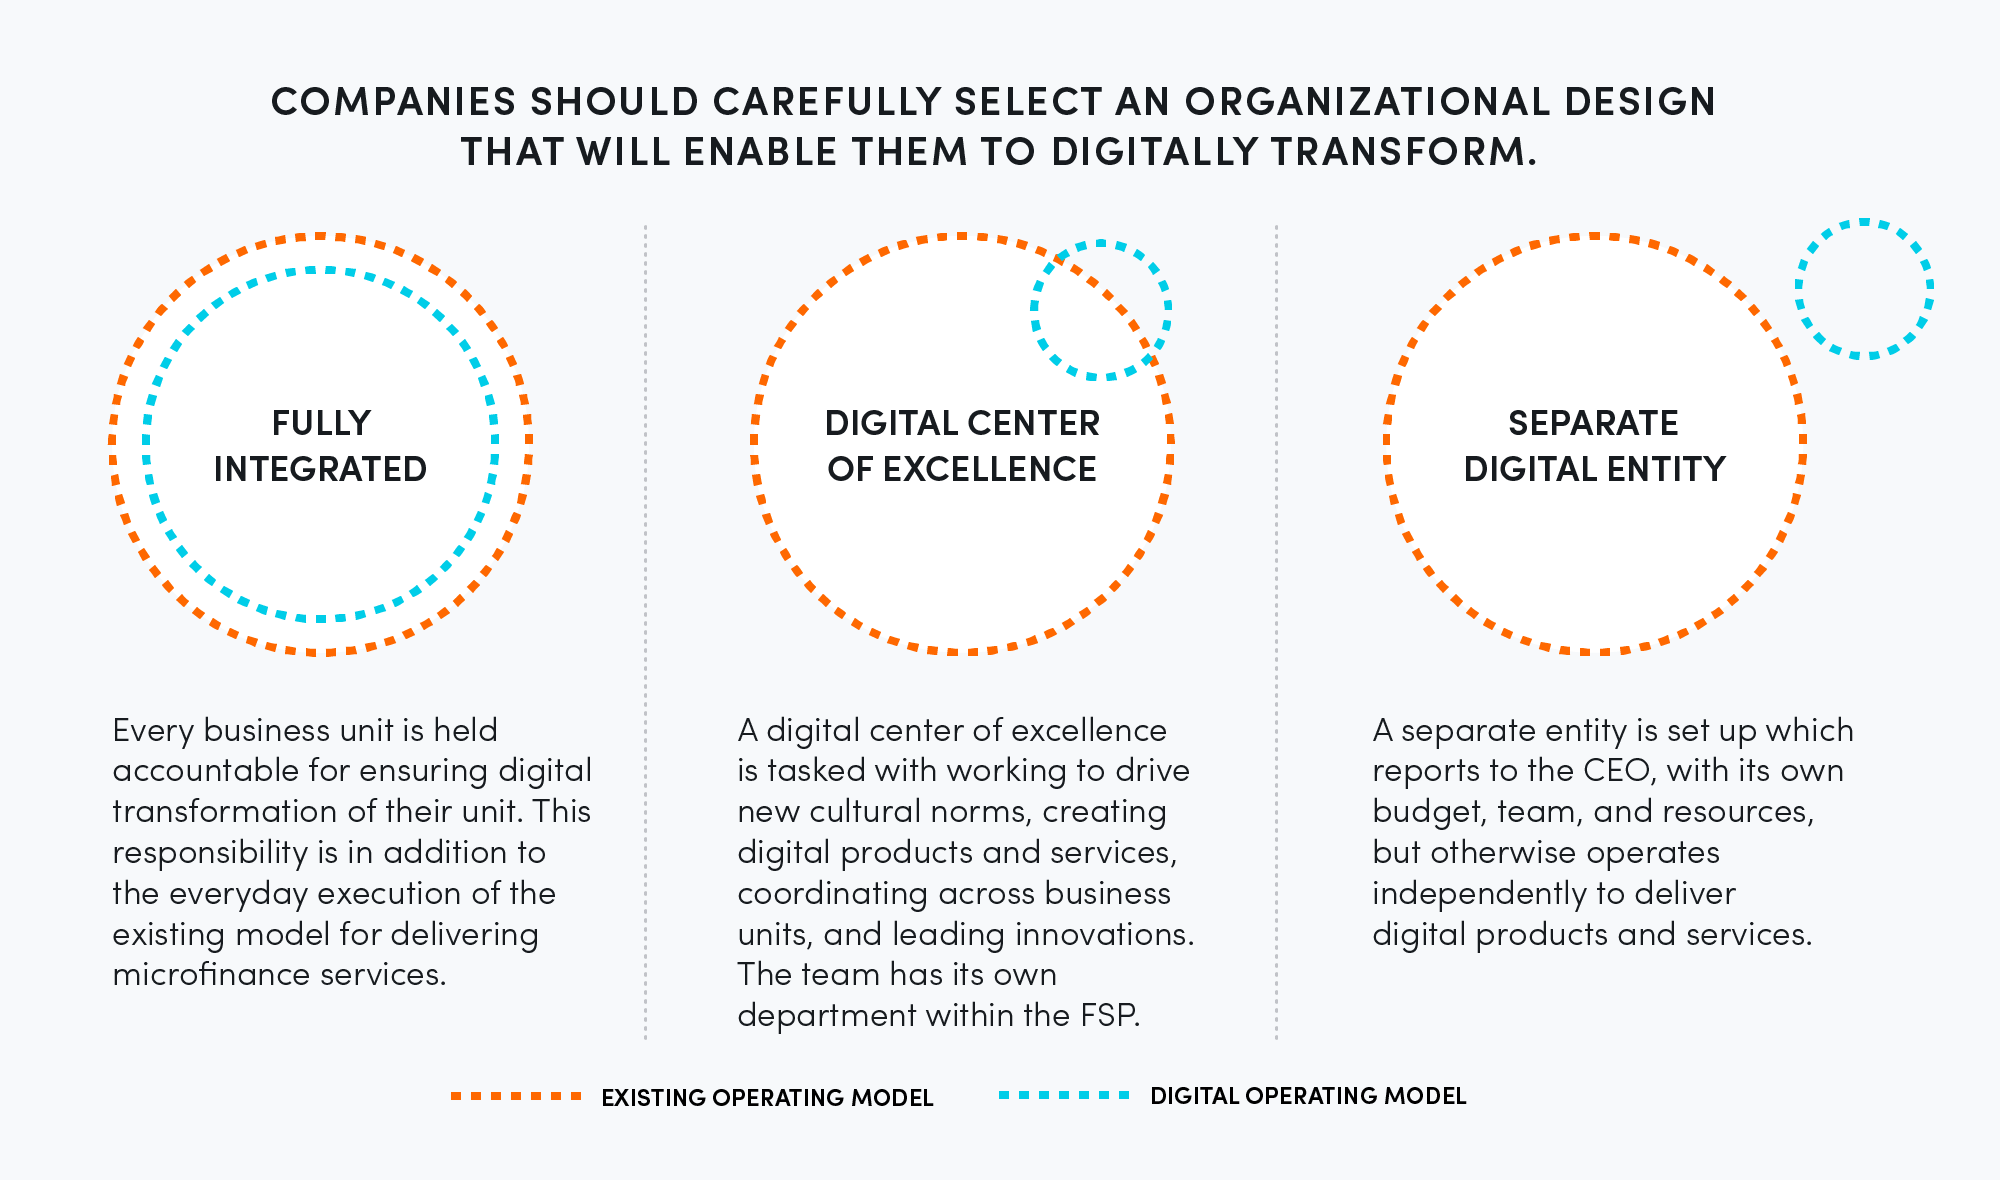 Companies should carefully select an organizational design that will enable them to digitally transform.